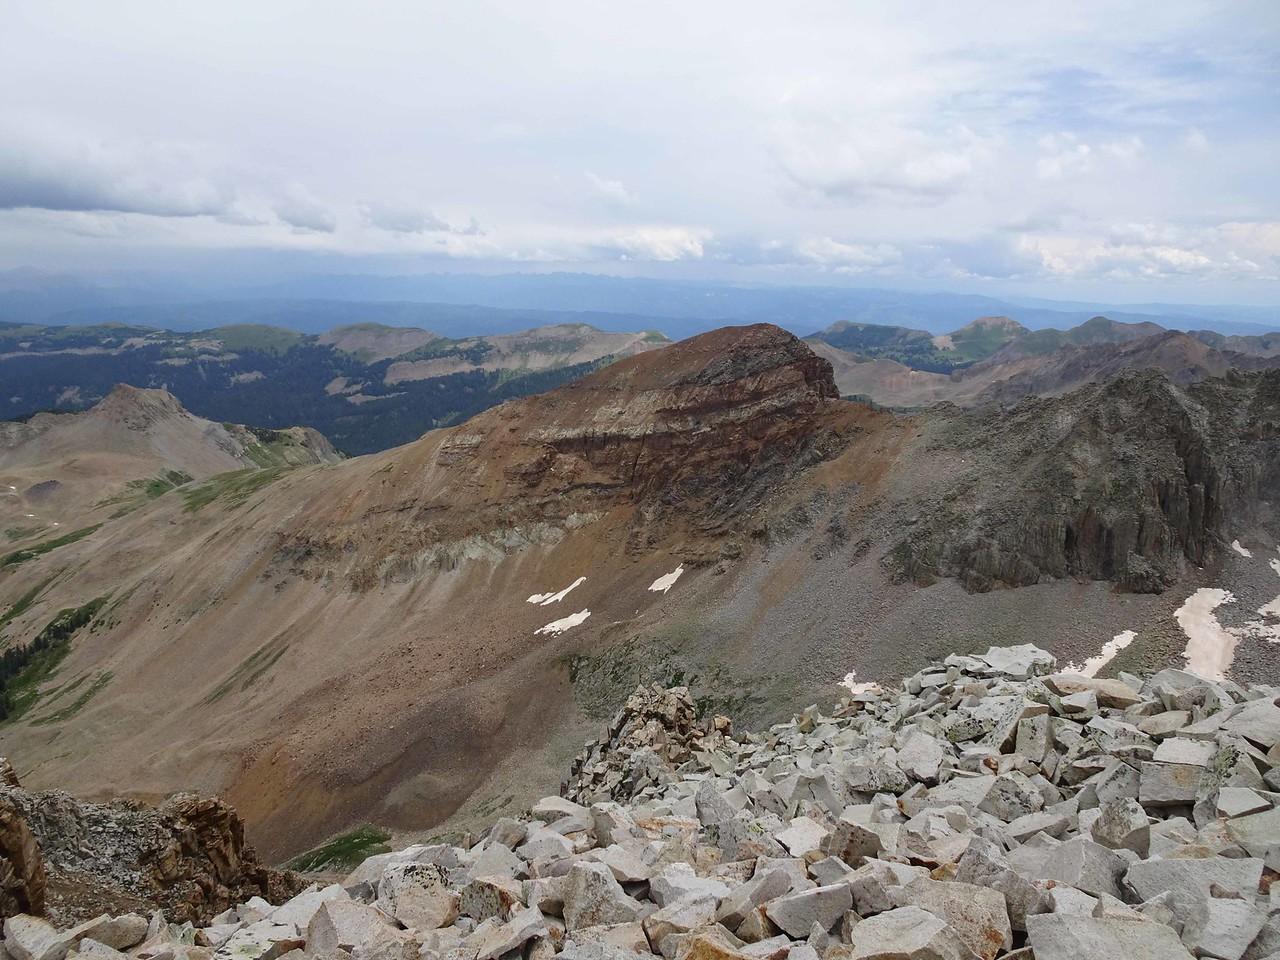 76 Looking east from the summit, Cetential Peak in foreground and Raider's Ridge distant